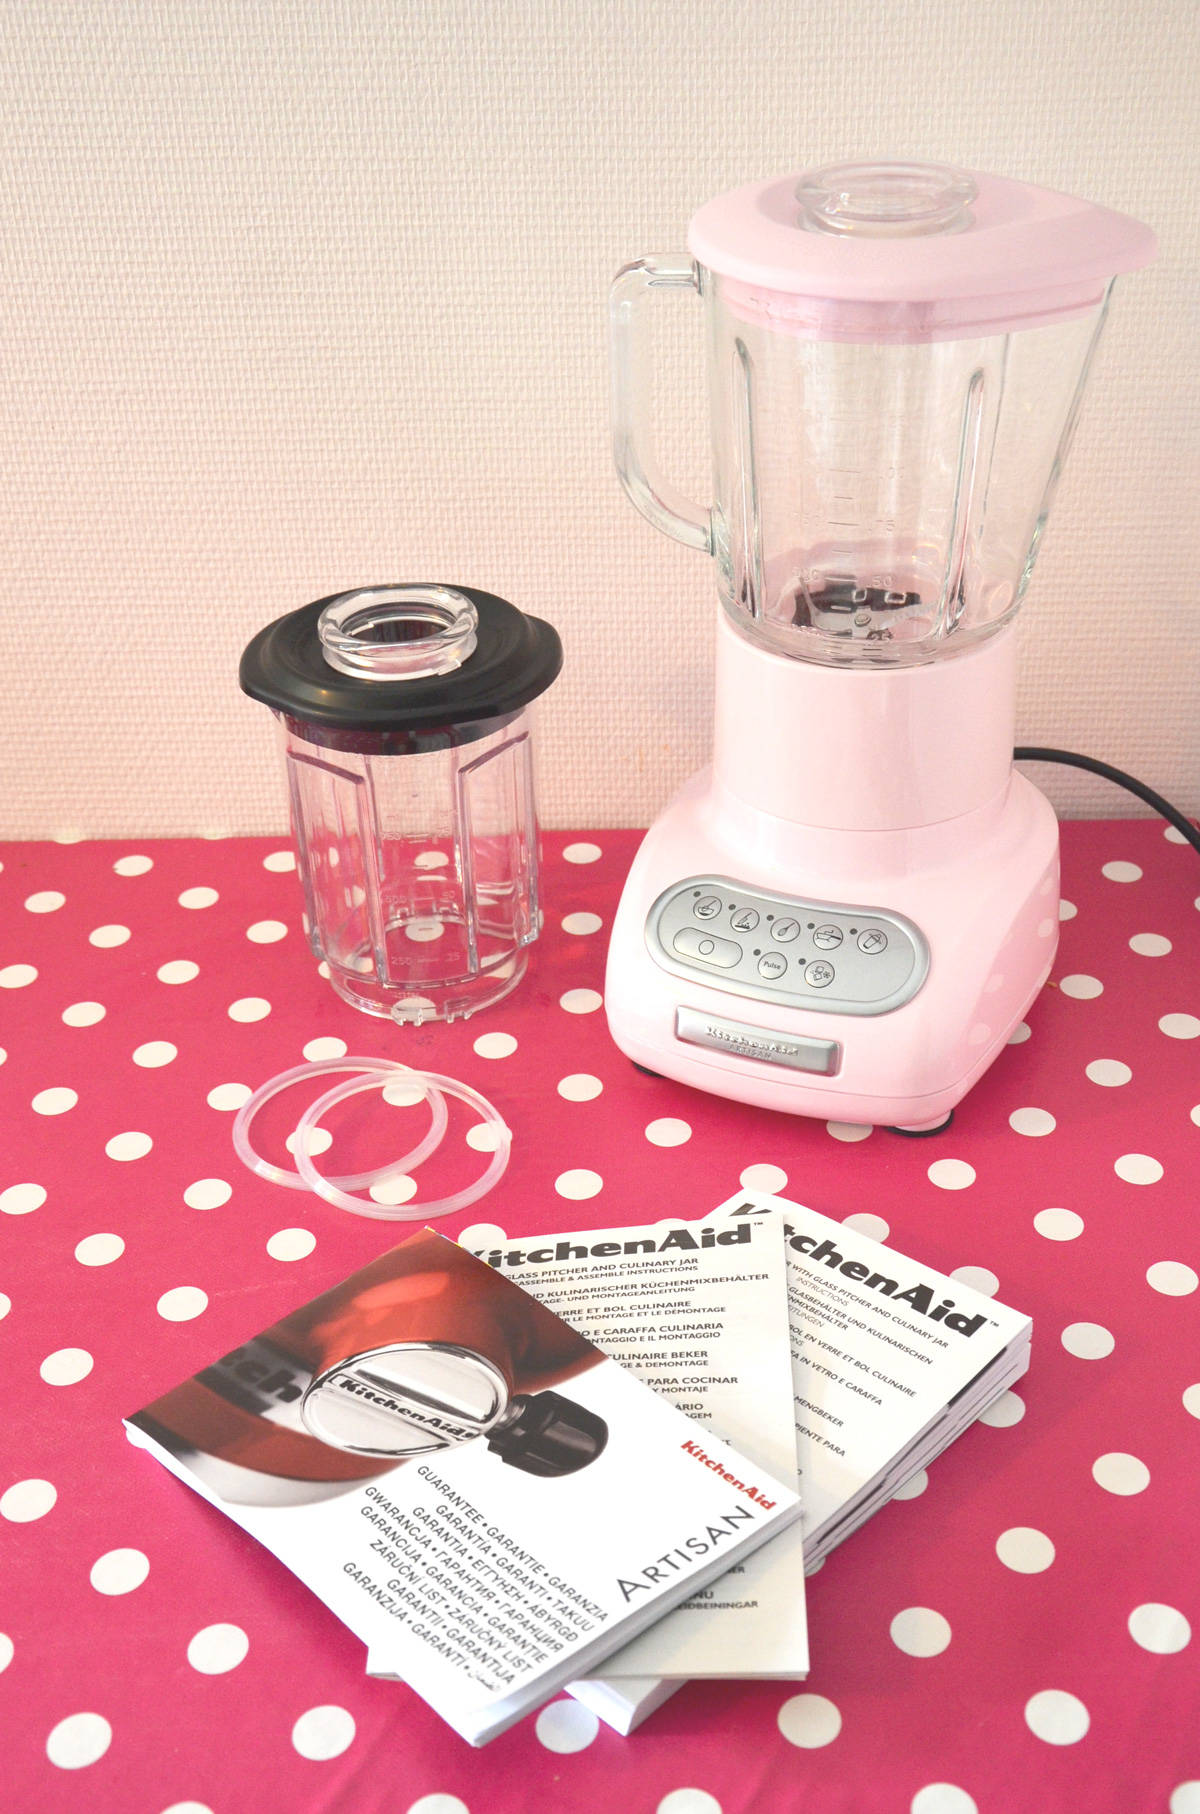 Blender kitchenaid avis